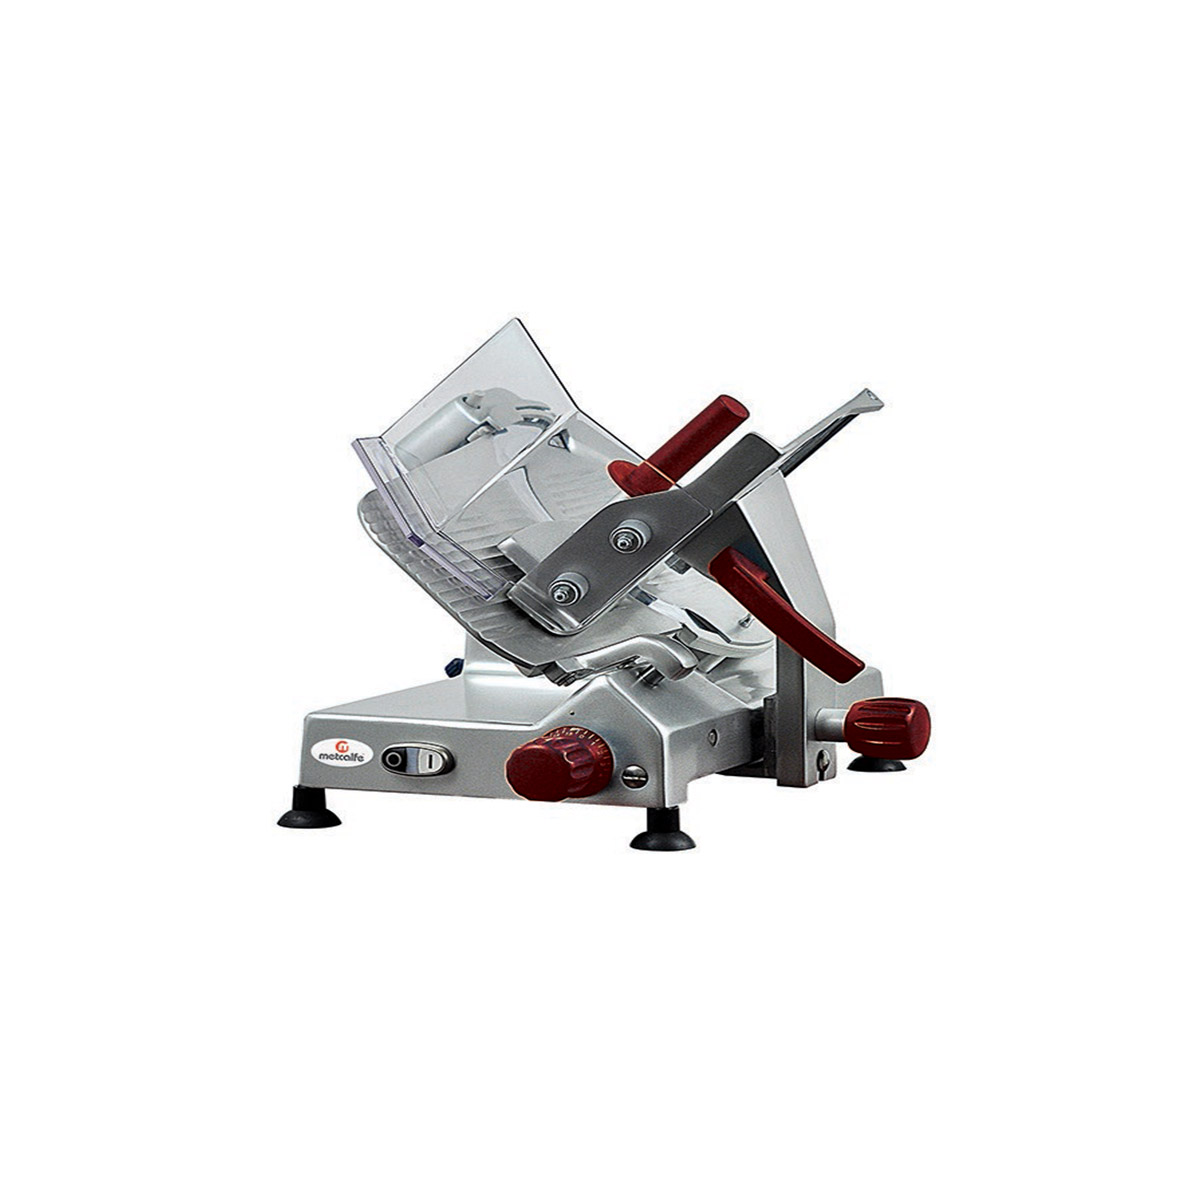 Metcalfe NS300 Medium Duty Gravity Feed Slicer